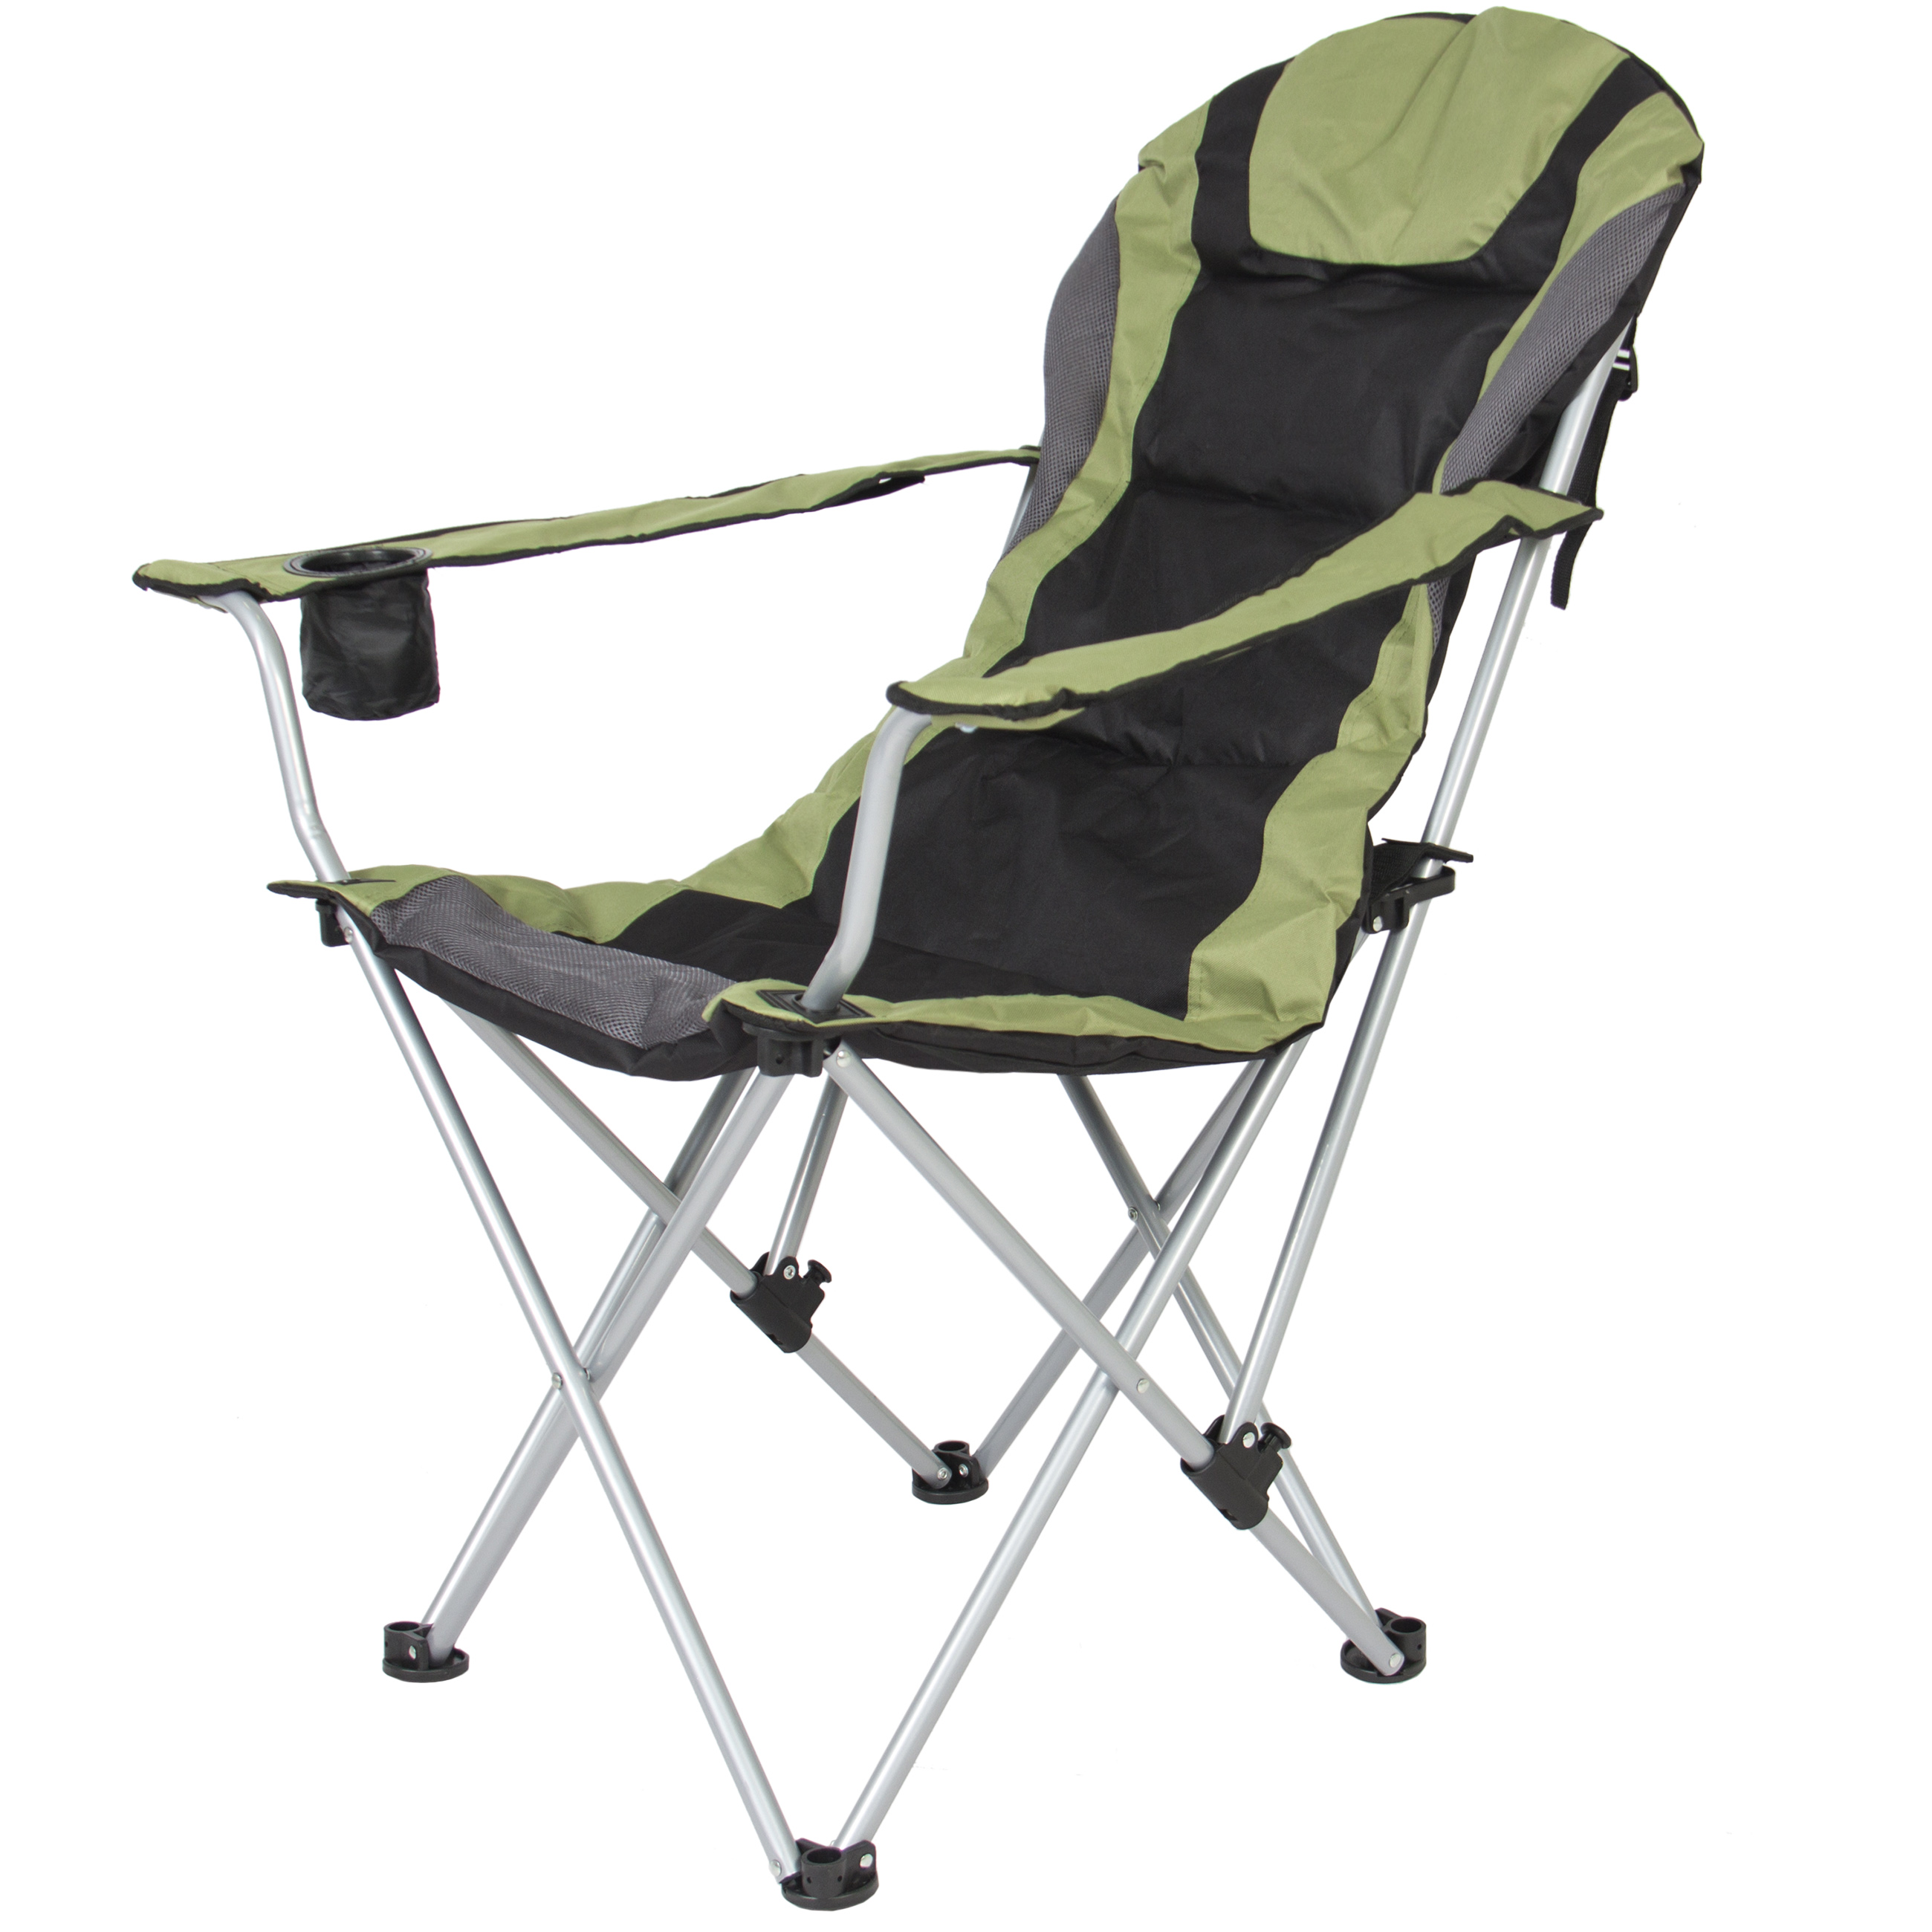 fishing chair ebay and a half leather best choice products deluxe padded reclining camping beach w portable carrying case green walmart com